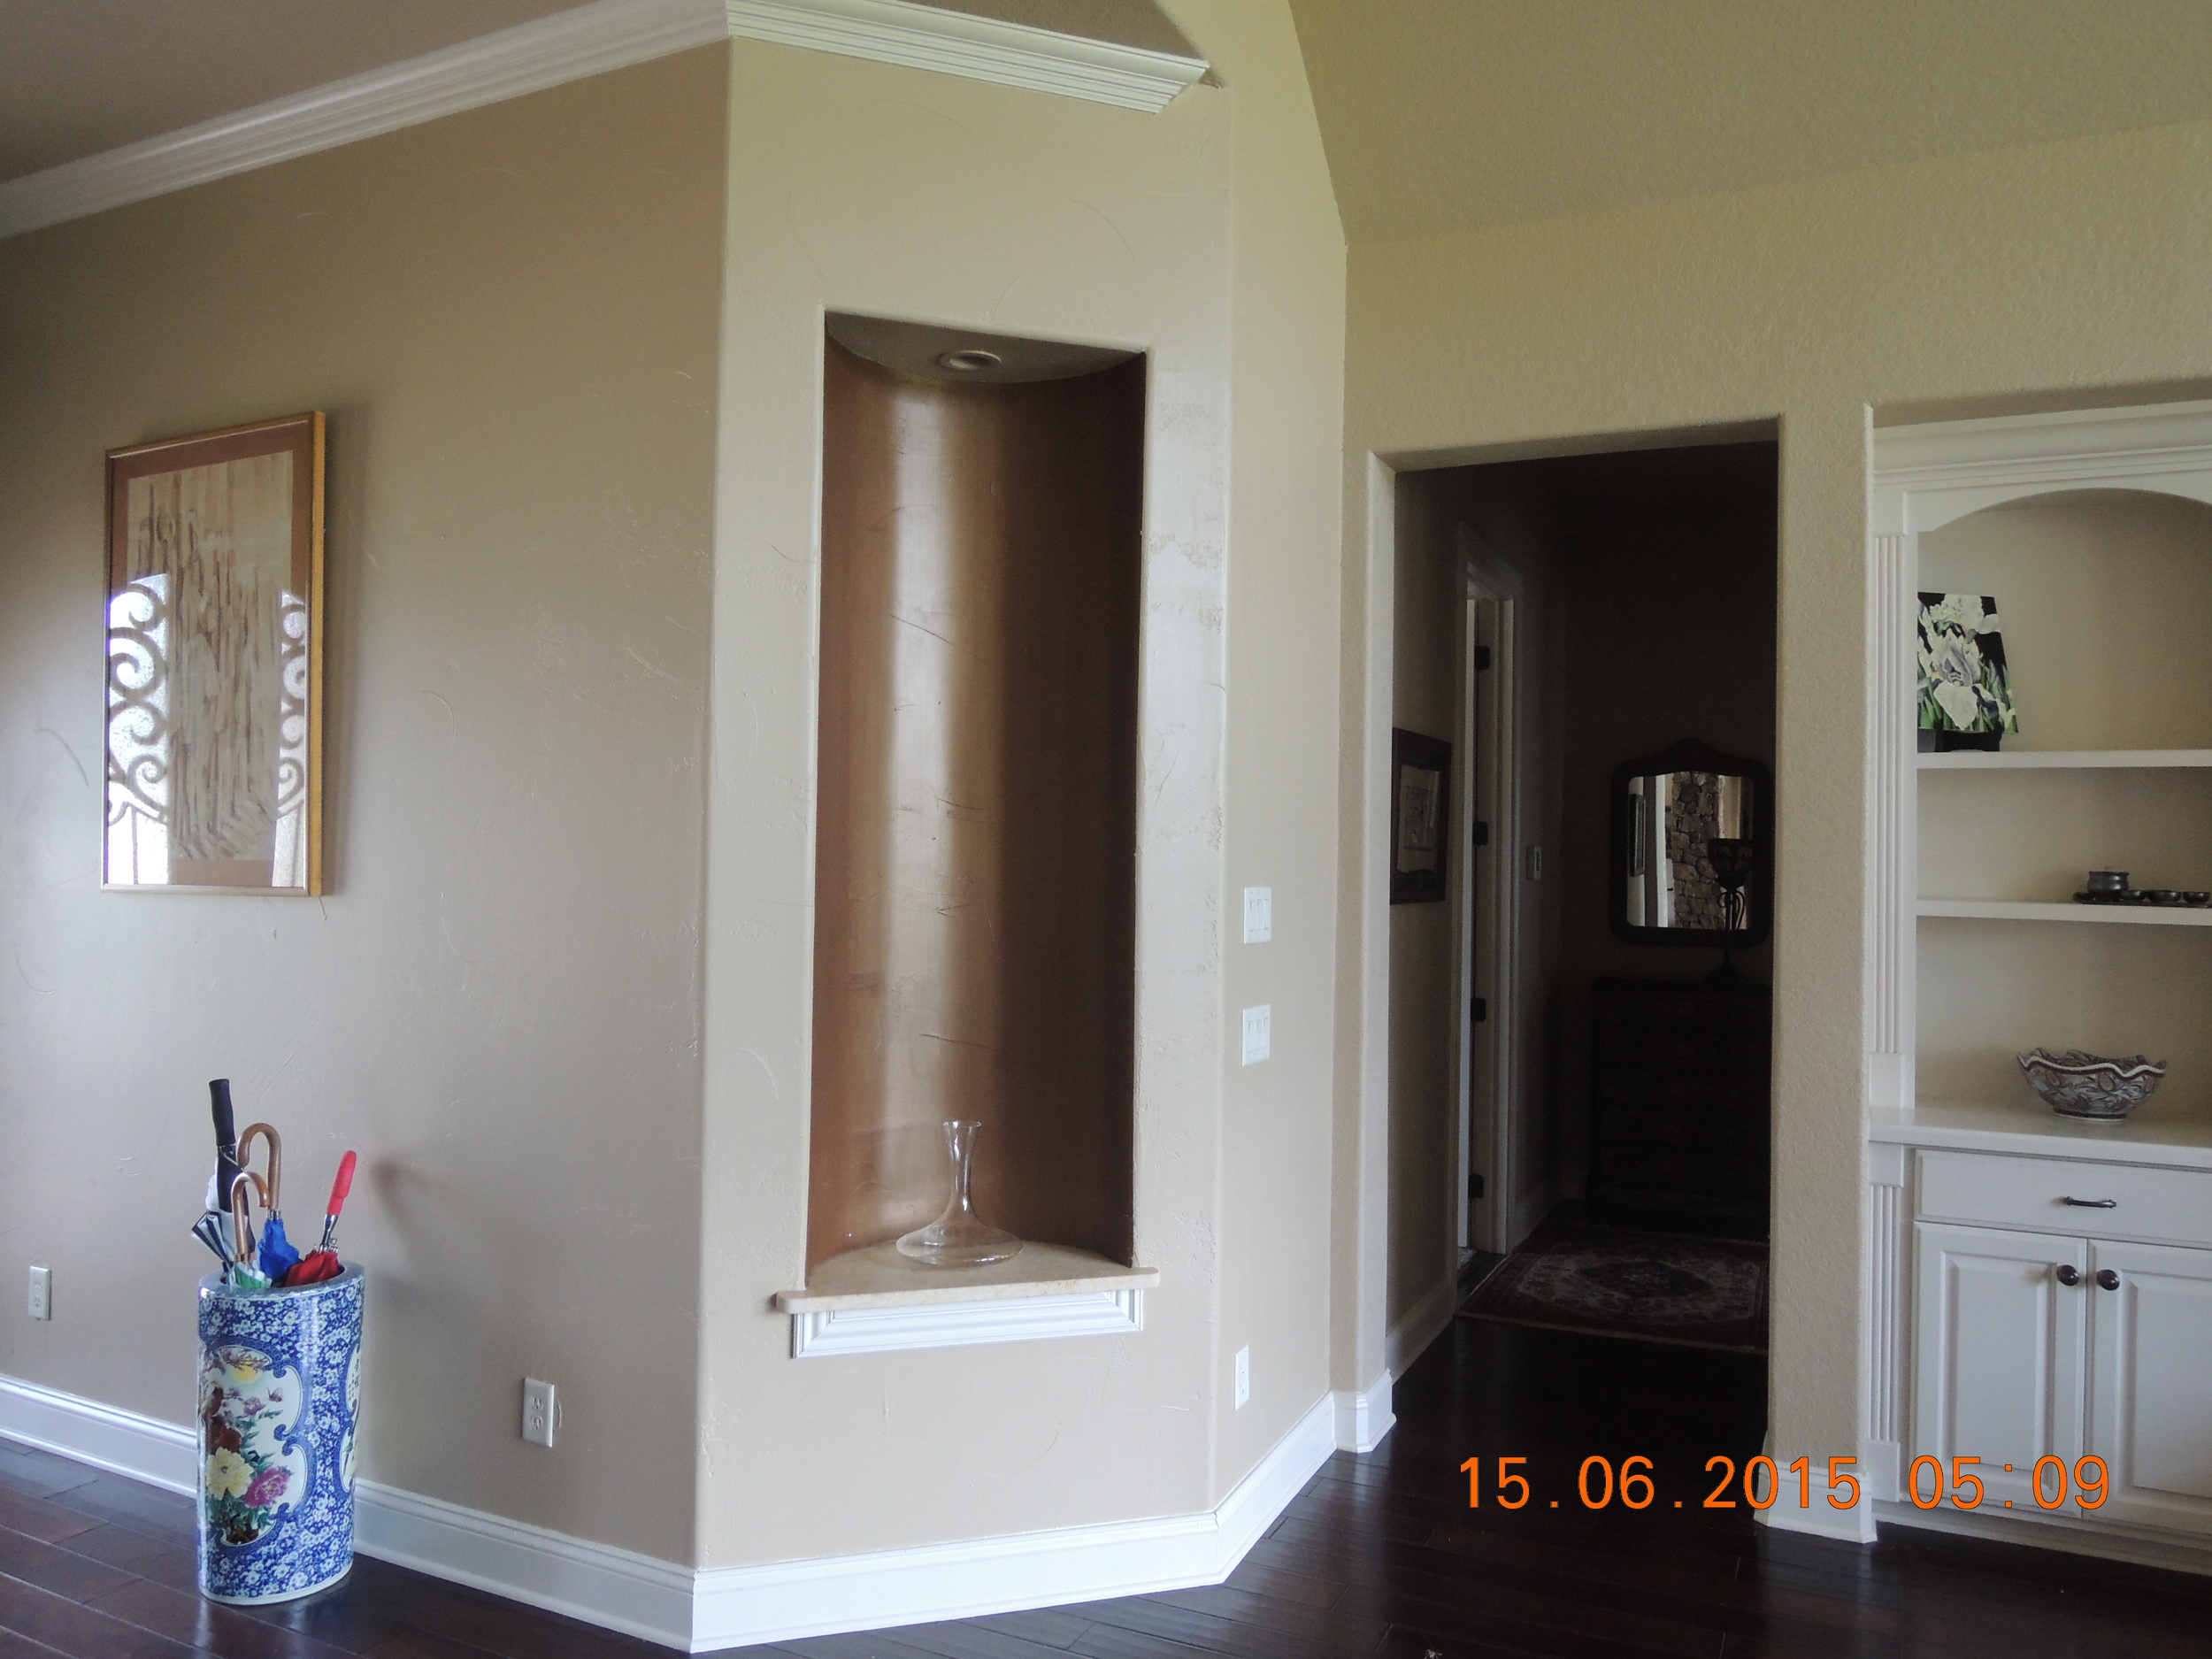 The display alcove